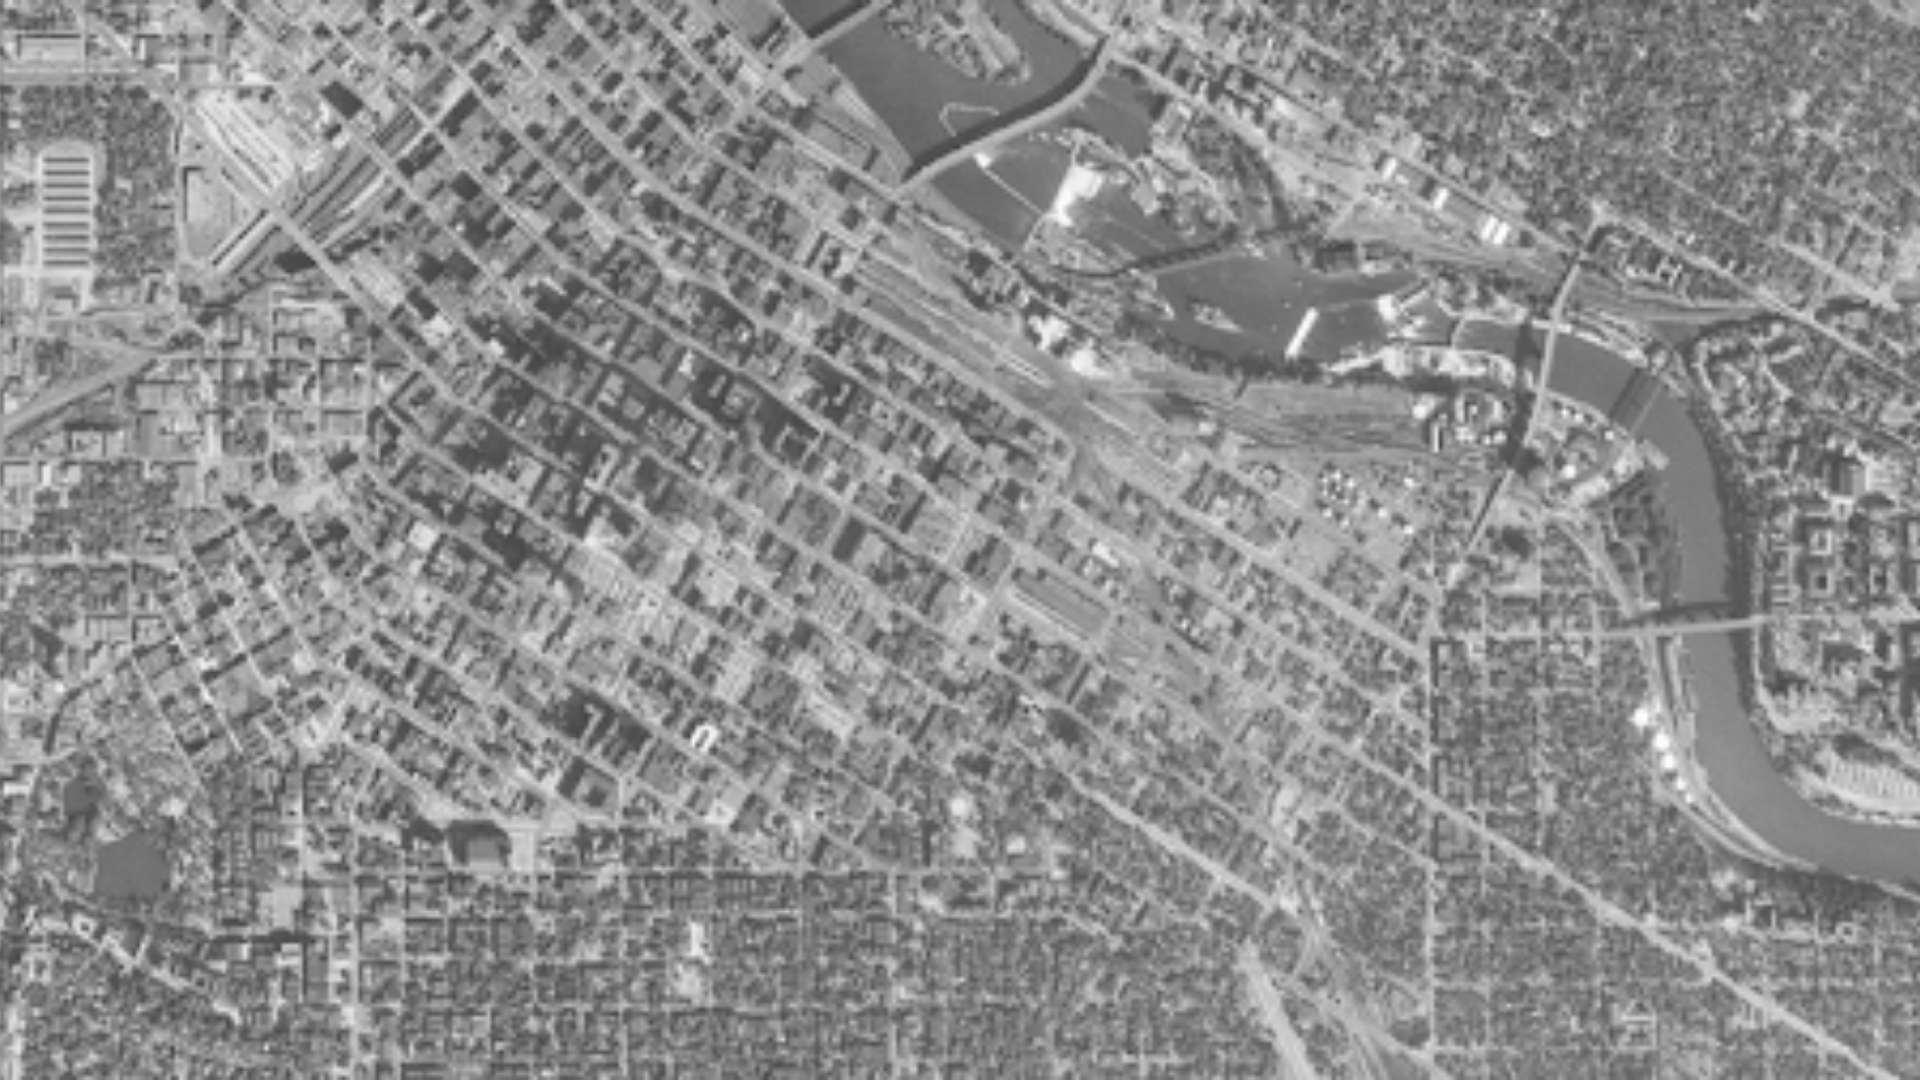 Downtown Minneapolis in 1954 with narrow streets, lots of land used for buildings